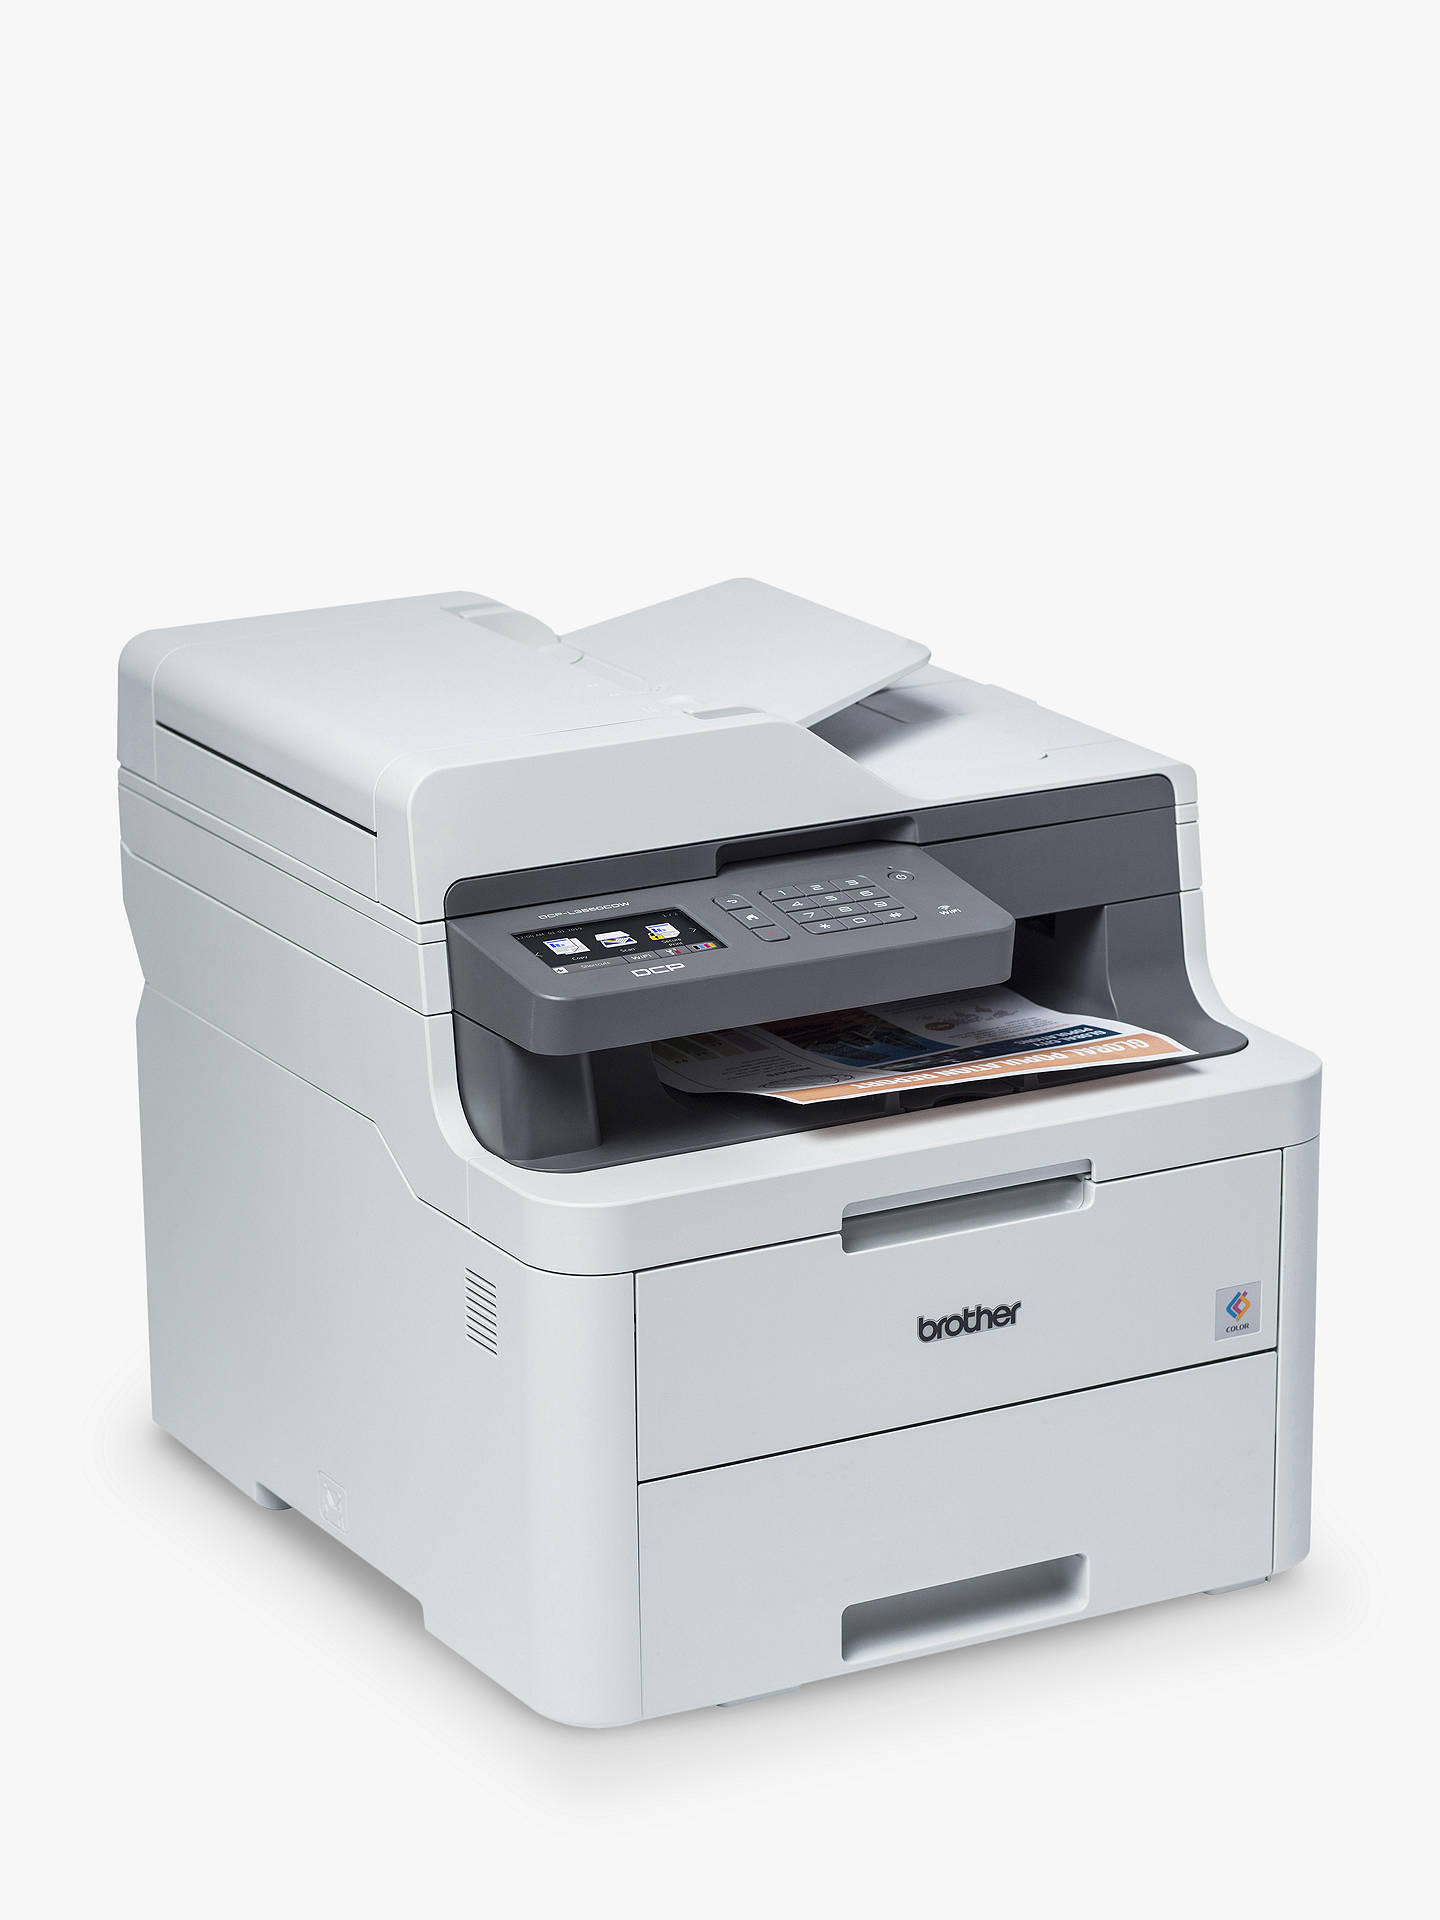 BuyBrother DCP-L3550CDW Wireless Three-in-One Colour Laser Printer, Grey Online at johnlewis.com